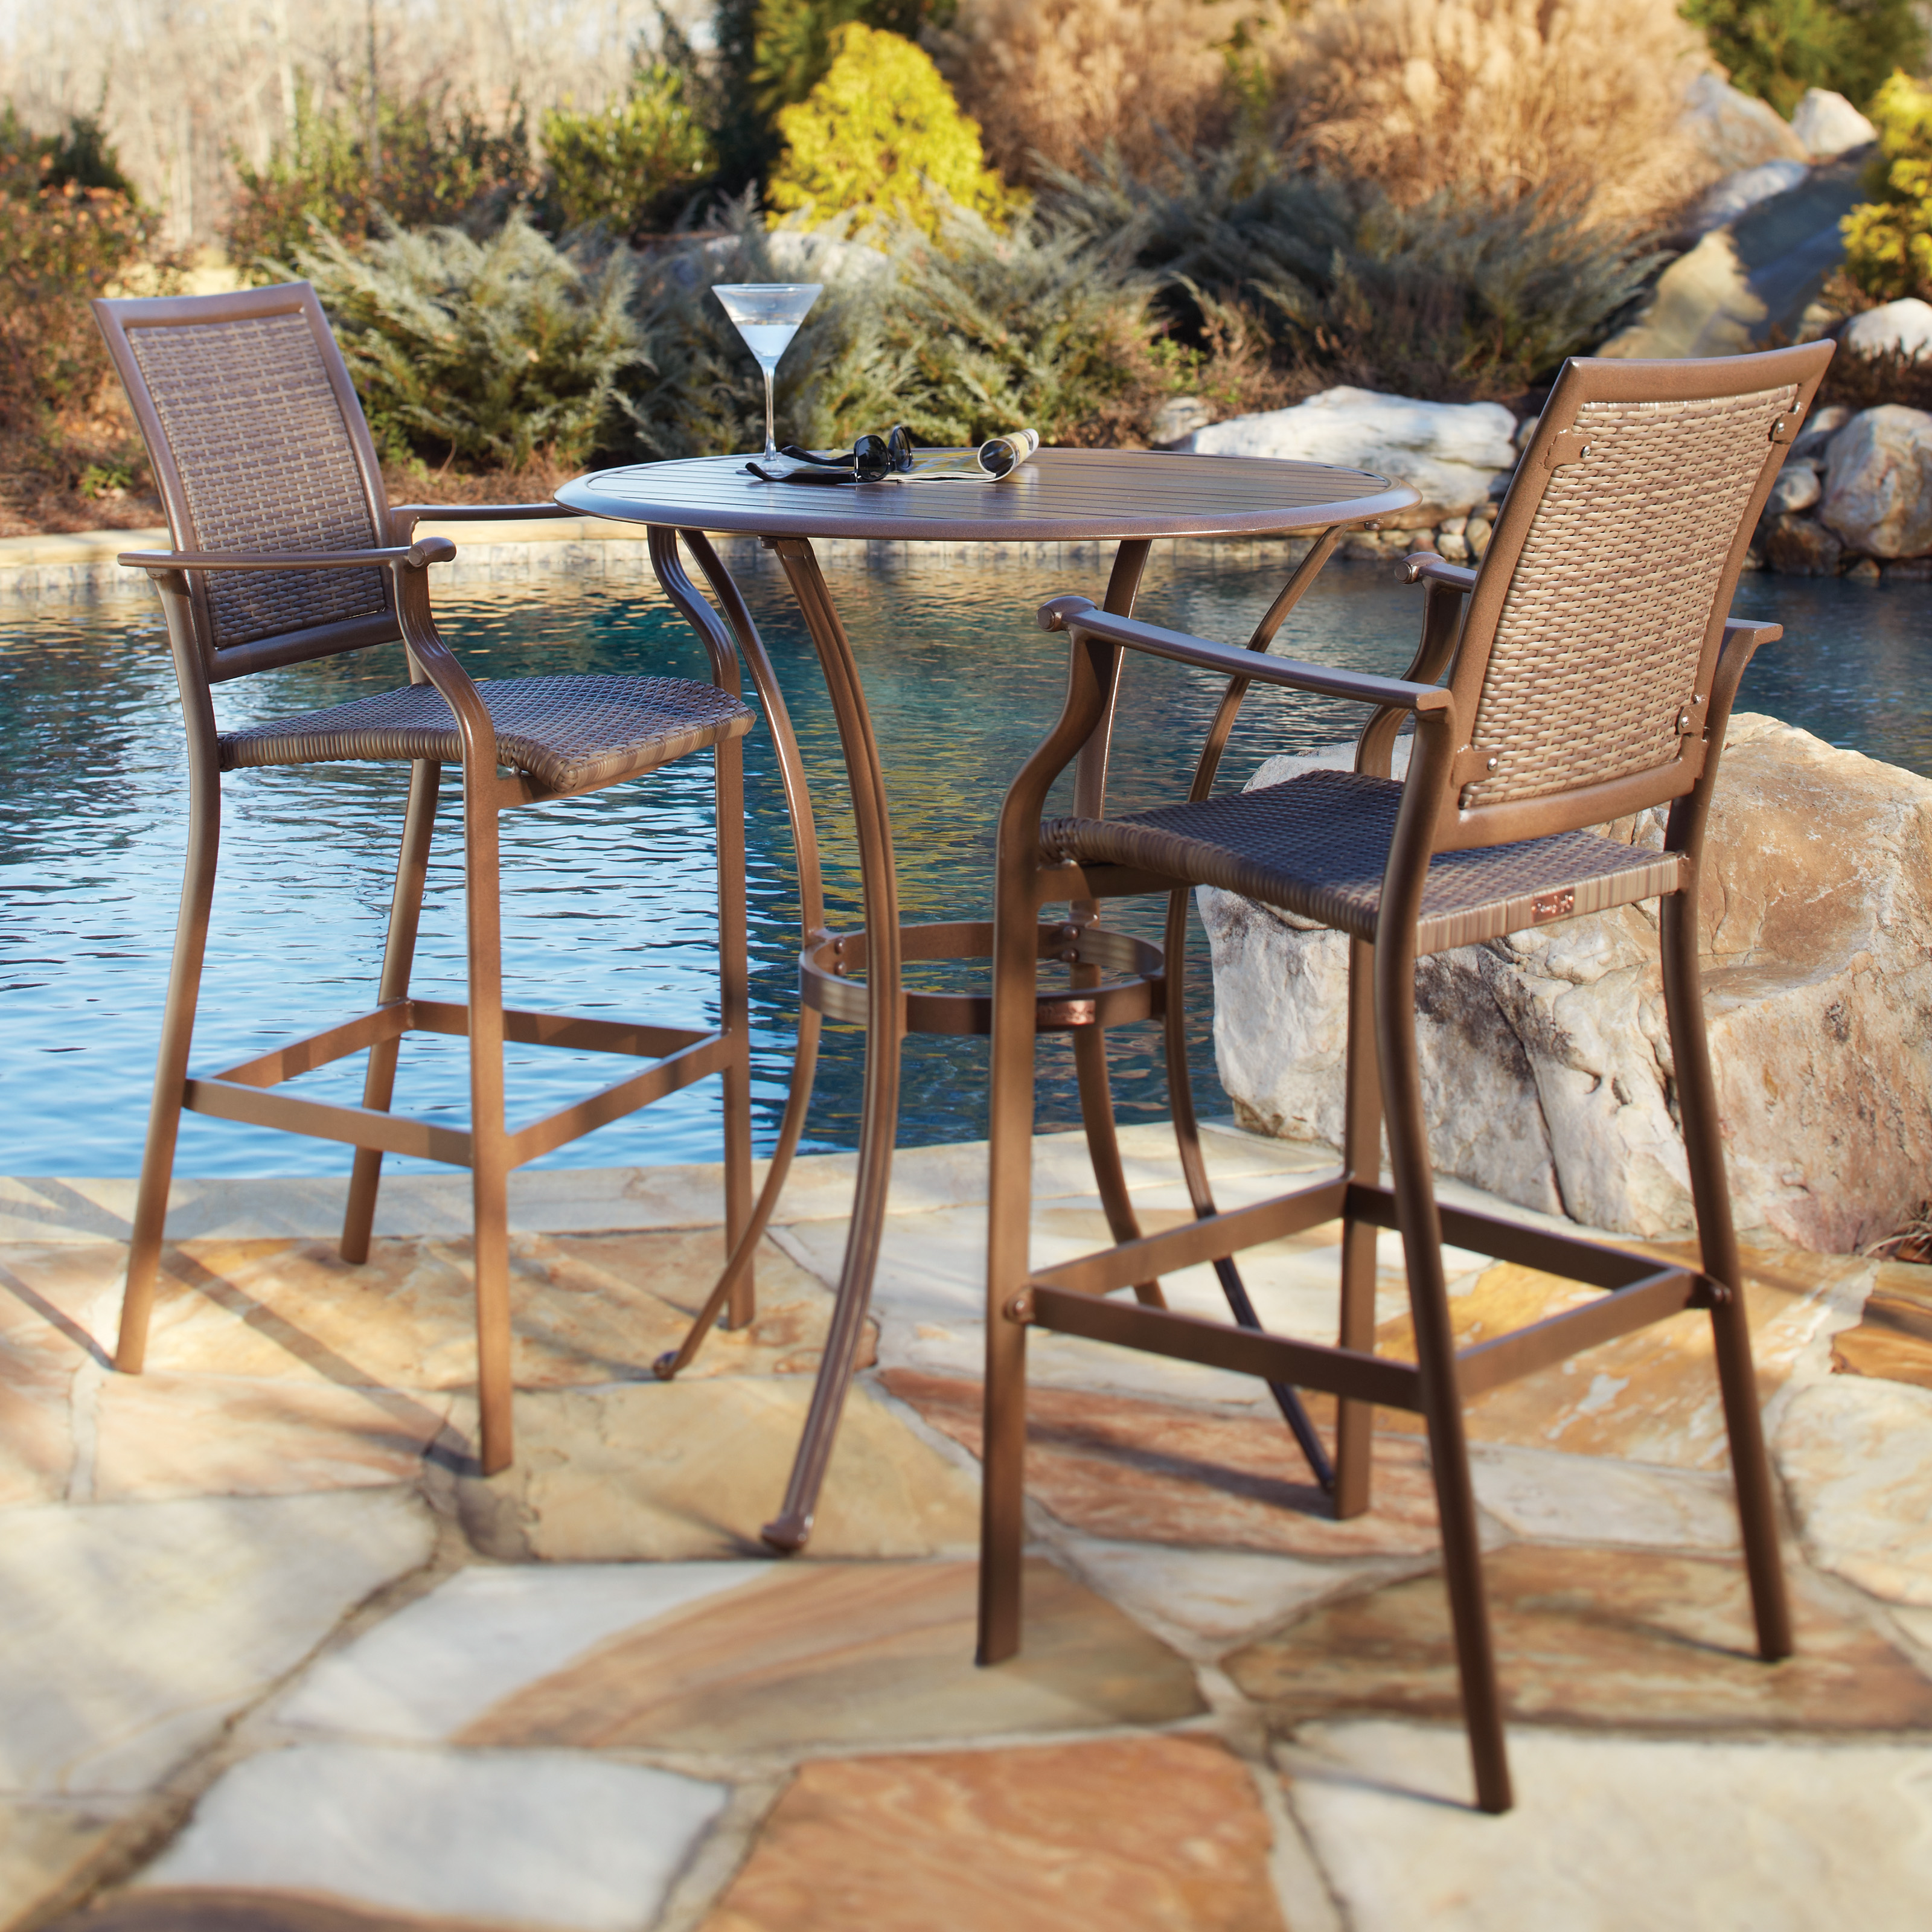 Panama Jack Island Cove Woven Slatted Bar Height Patio Pub Table Set  Patio Dining Sets at